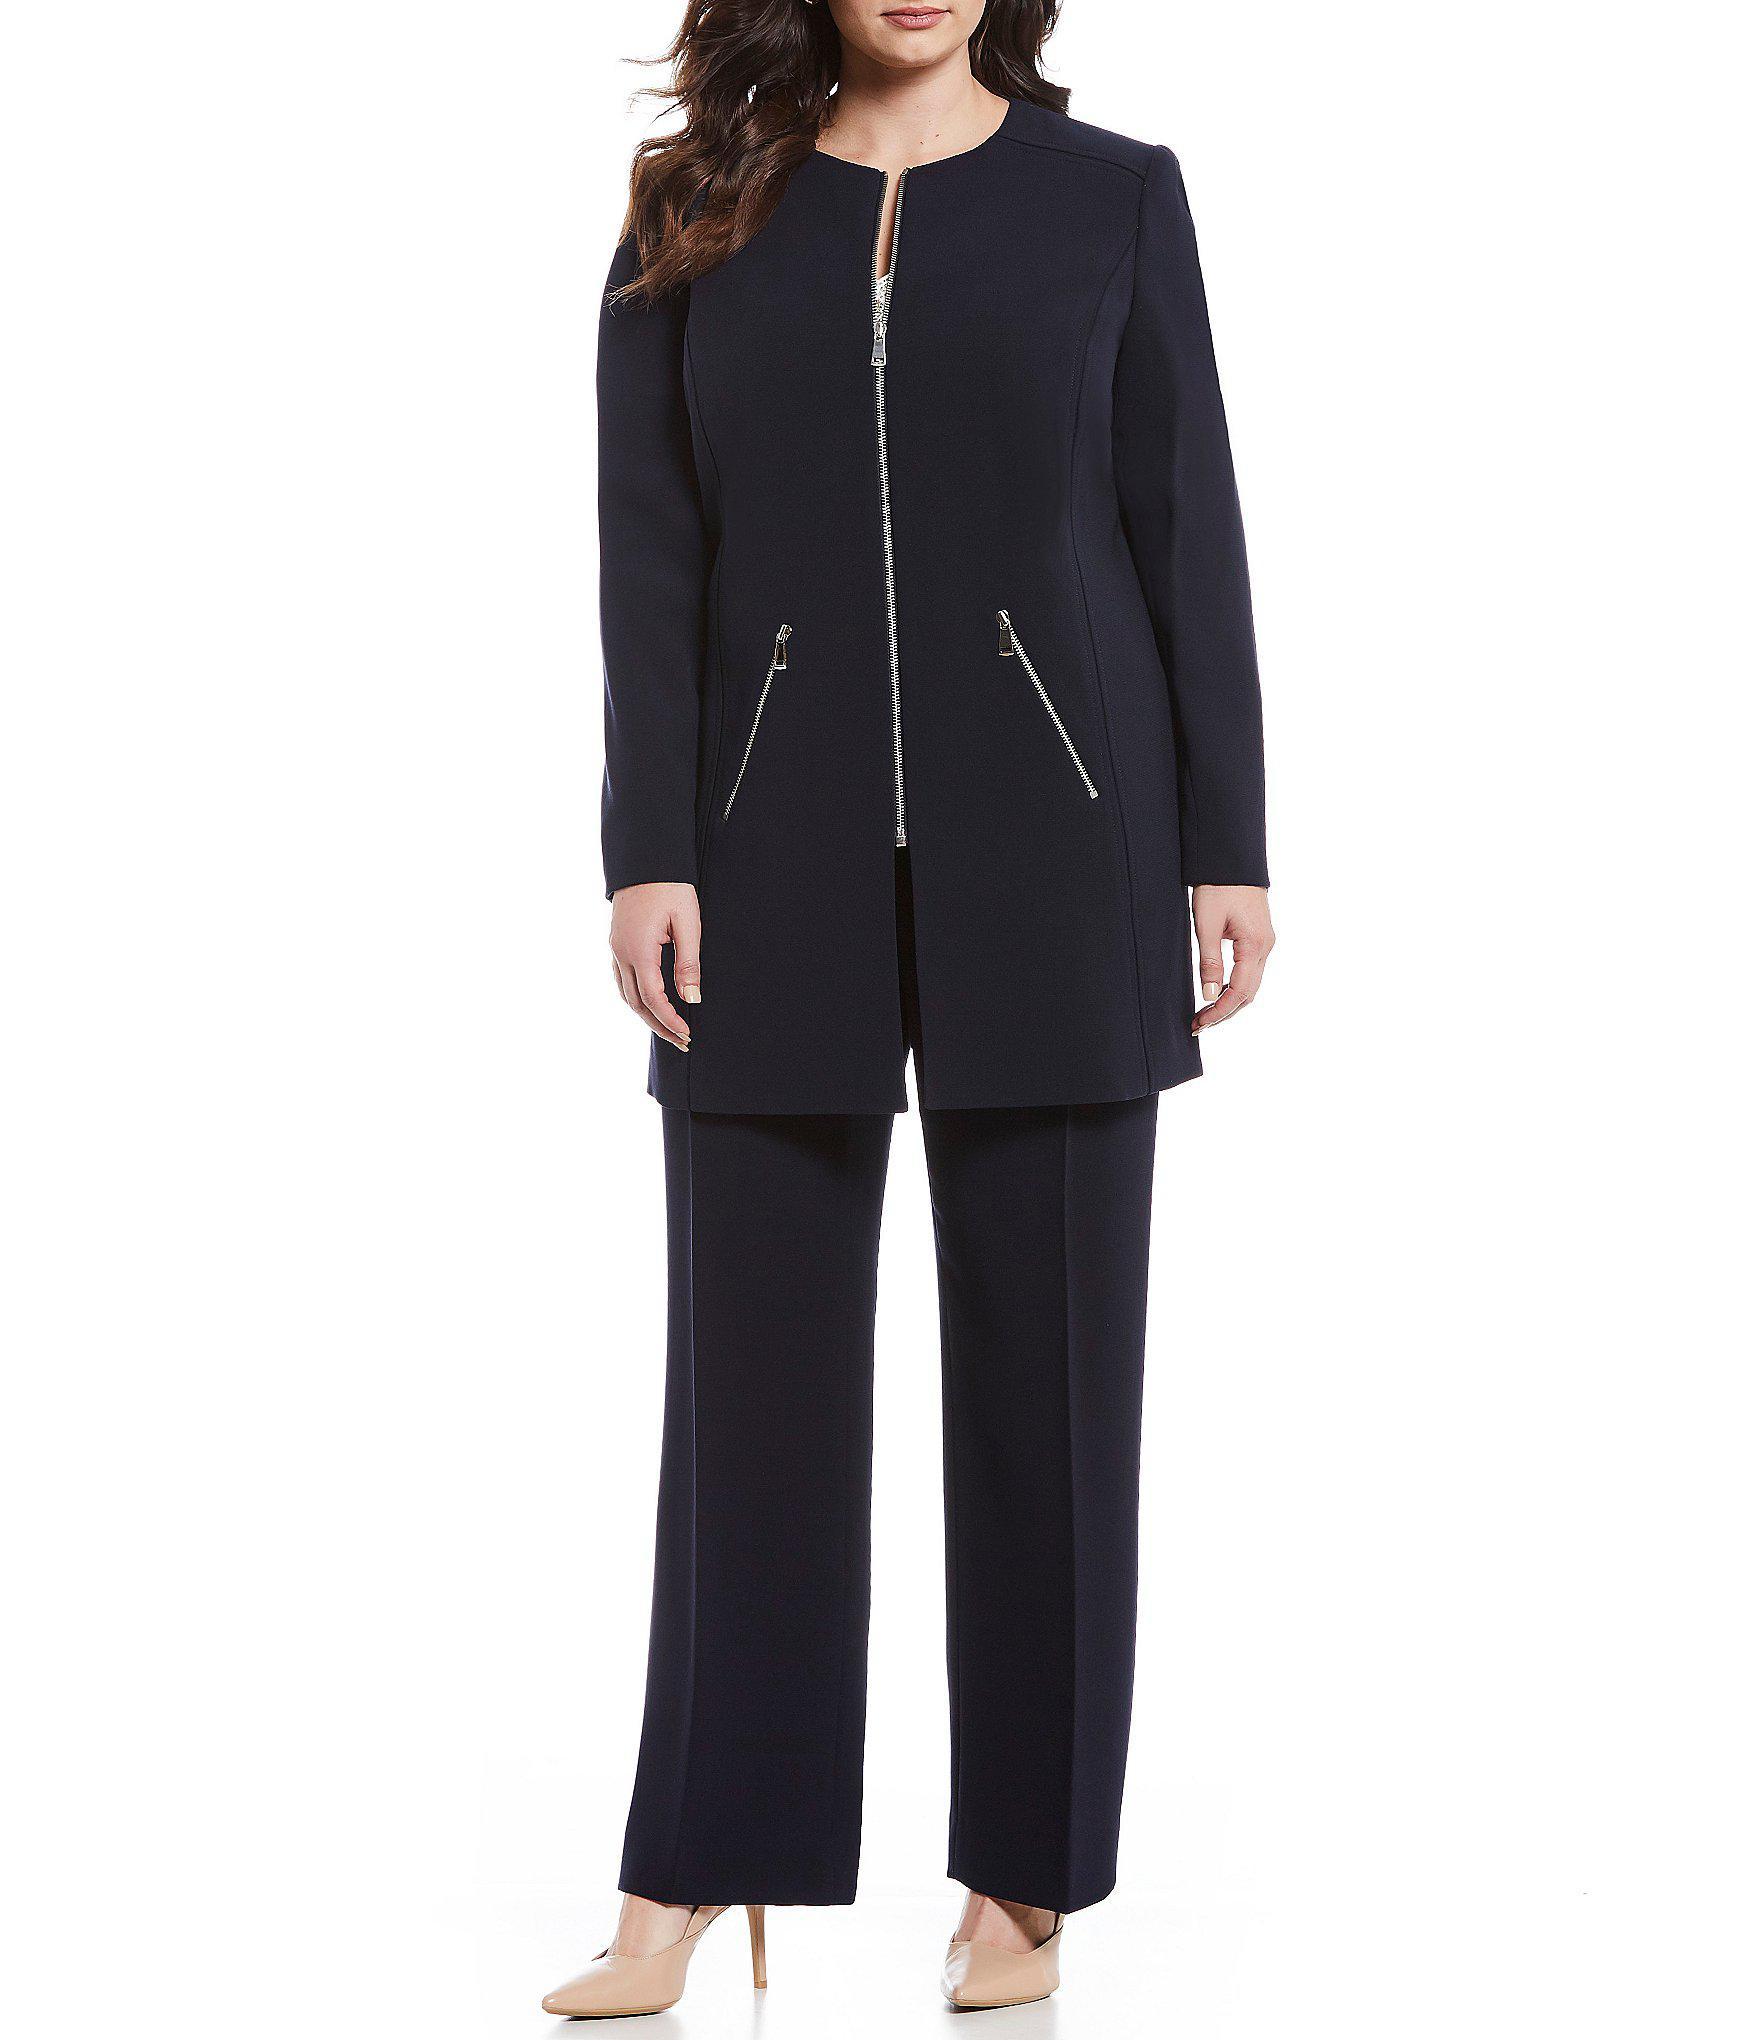 07fa3e8877c Tahari Plus Size Zip-front Topper Jacket 2-piece Pant Suit in Blue ...